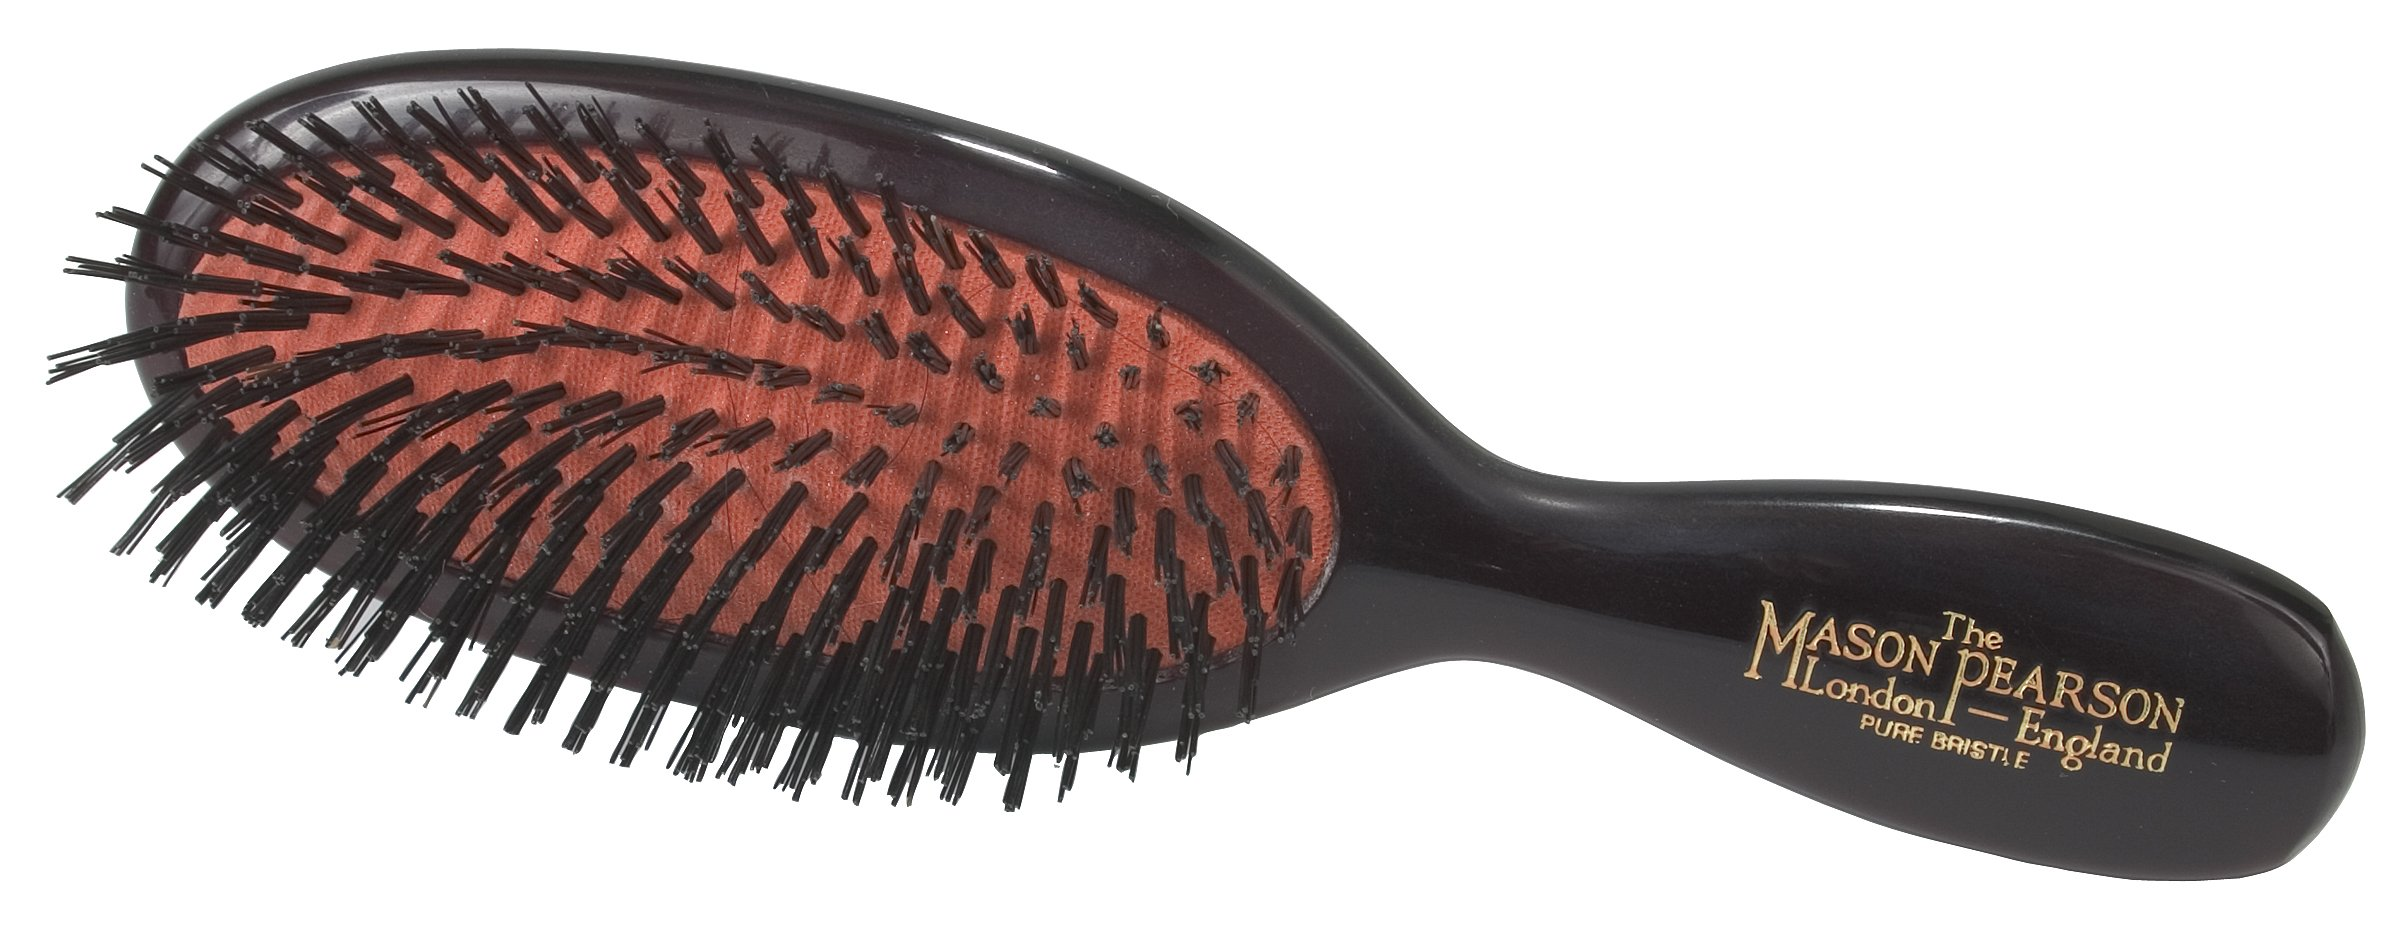 Mason Pearson Pocket Bristle Hair Brush - 71GrGnx0M8L - Mason Pearson Pocket Bristle Hair Brush